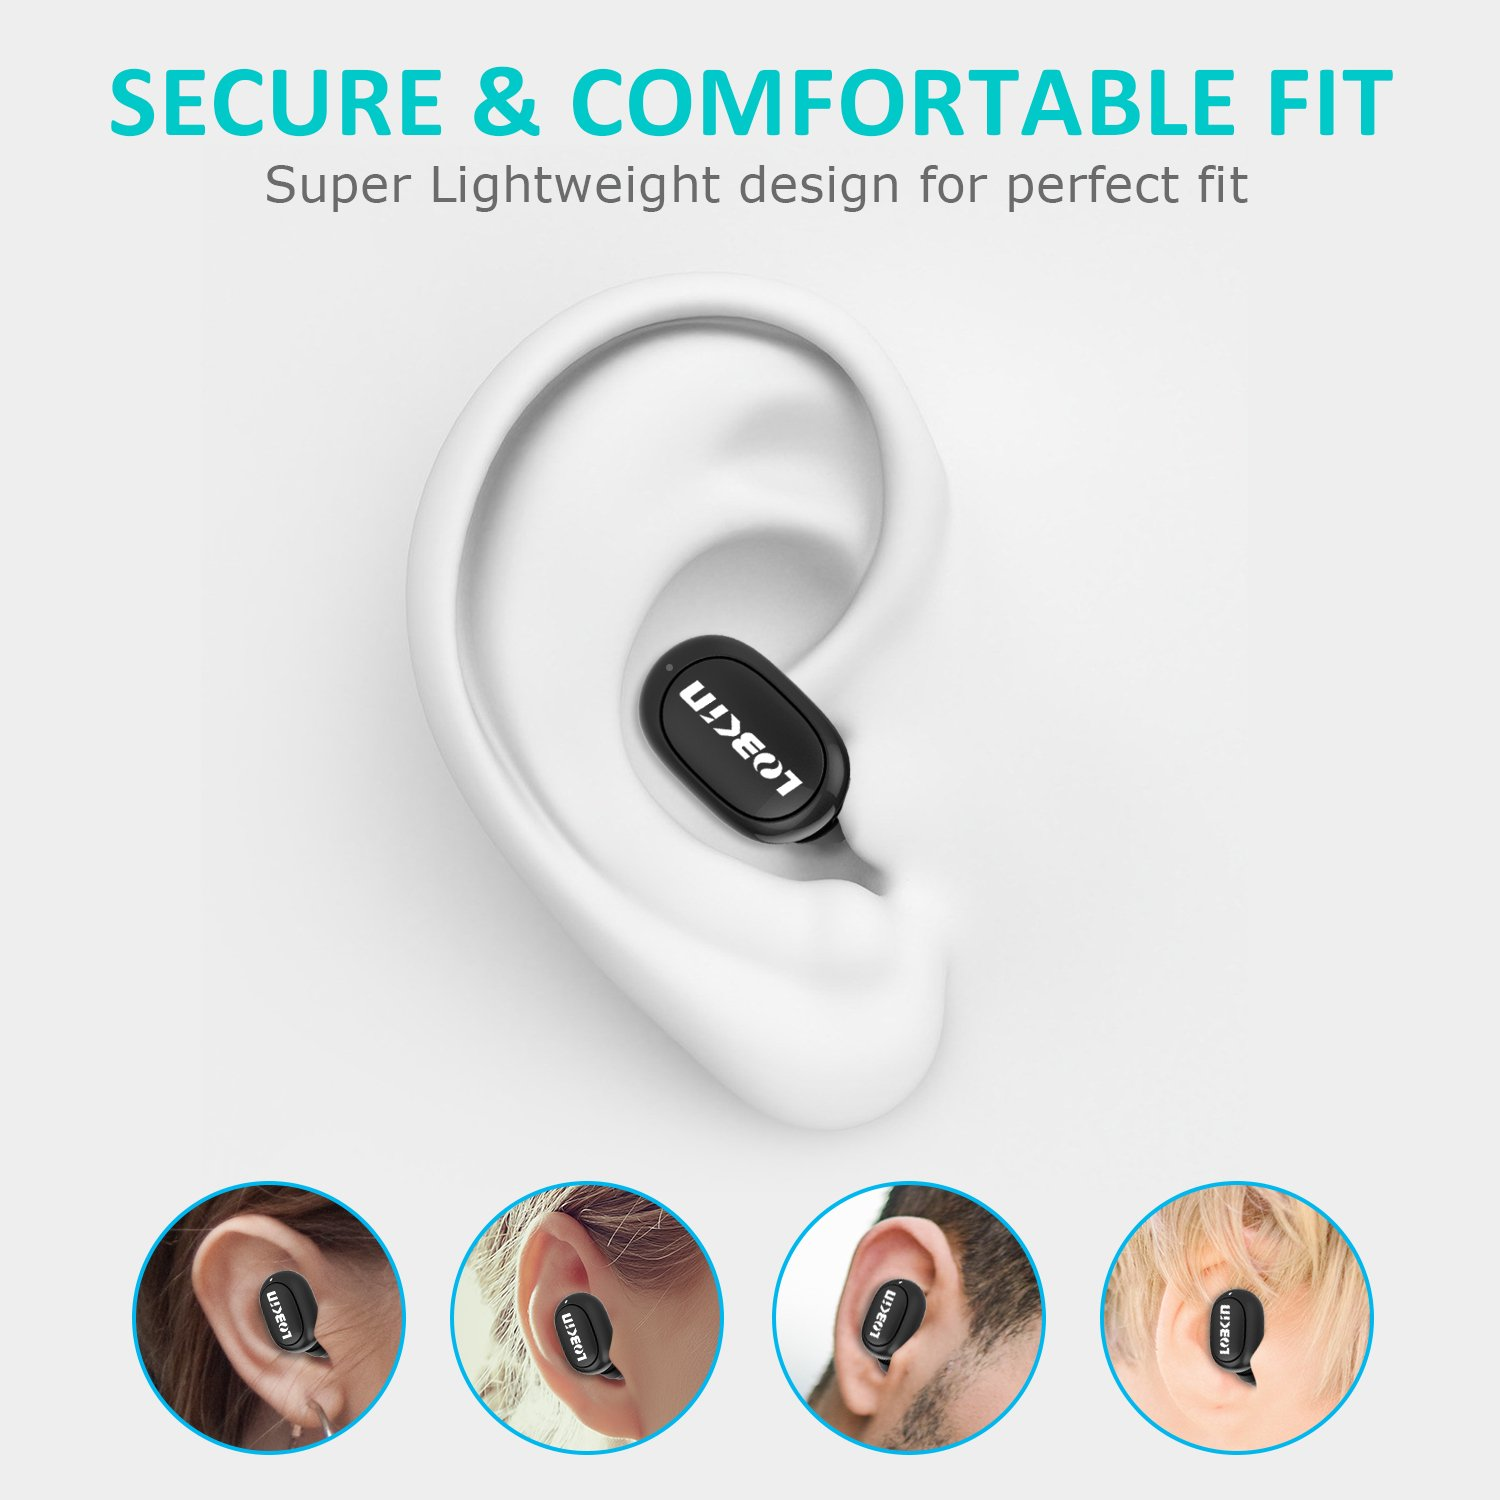 Lobkin Bluetooth Headsets,Mini Earbuds Smallest Wireless Headphones with Mic,In-Ear Earphones for Running - Black